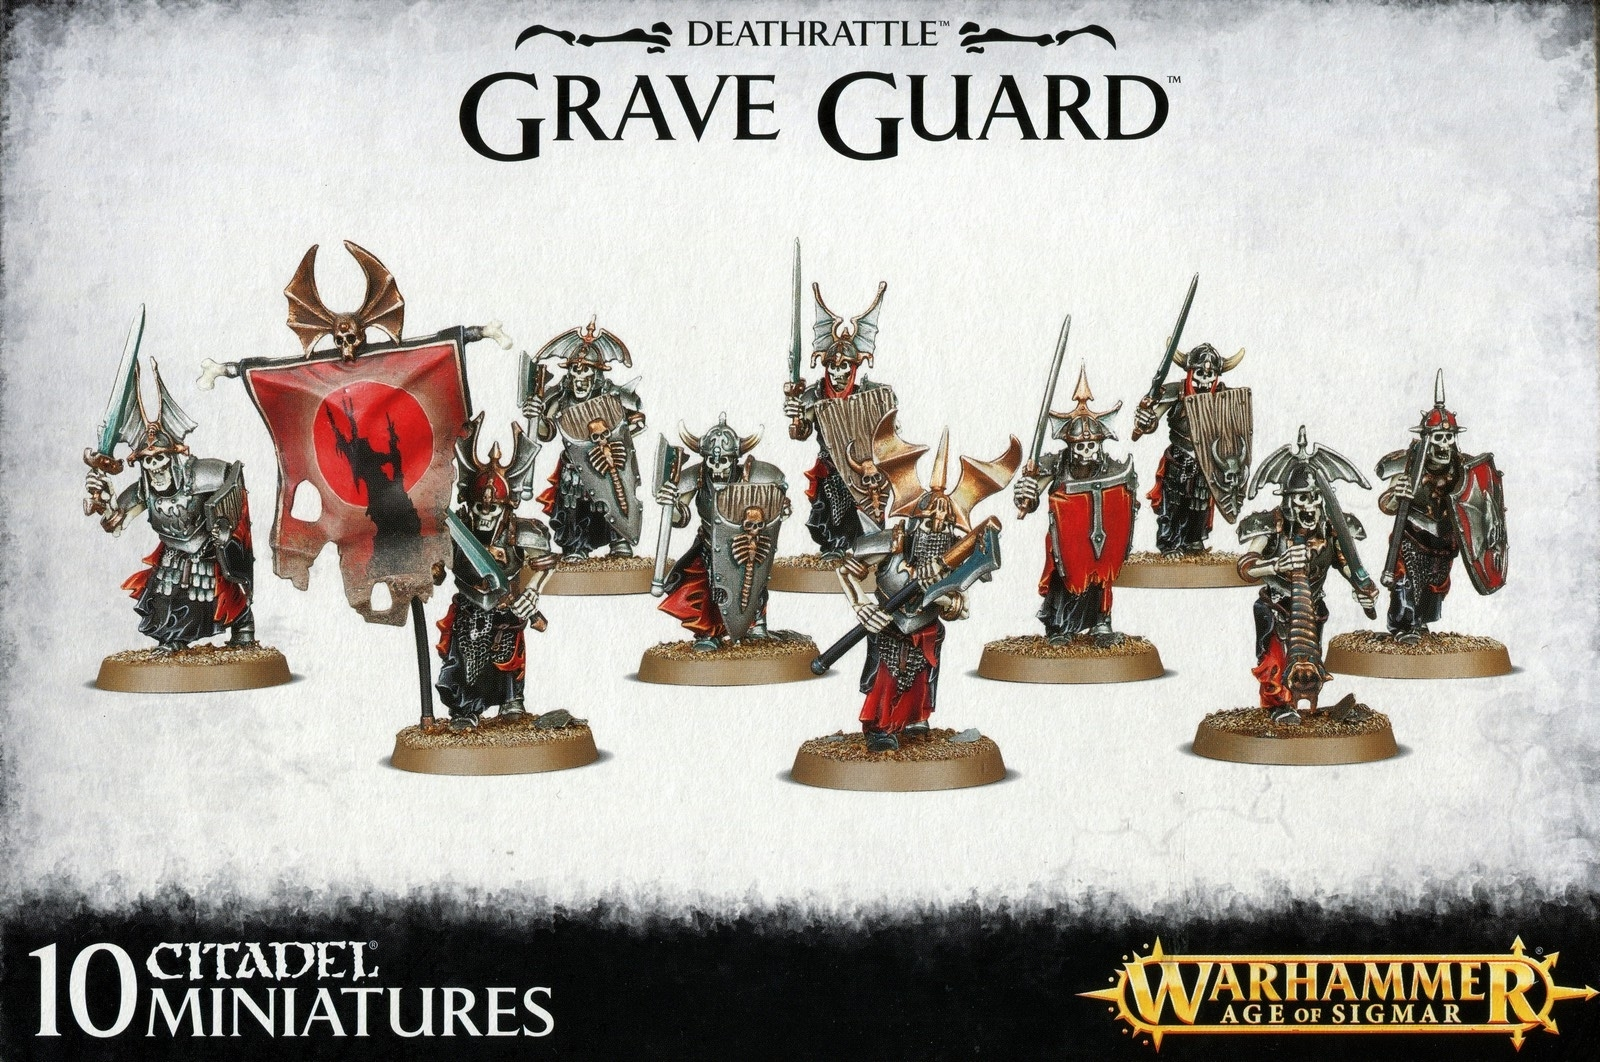 Deathrattle Grave Guard image